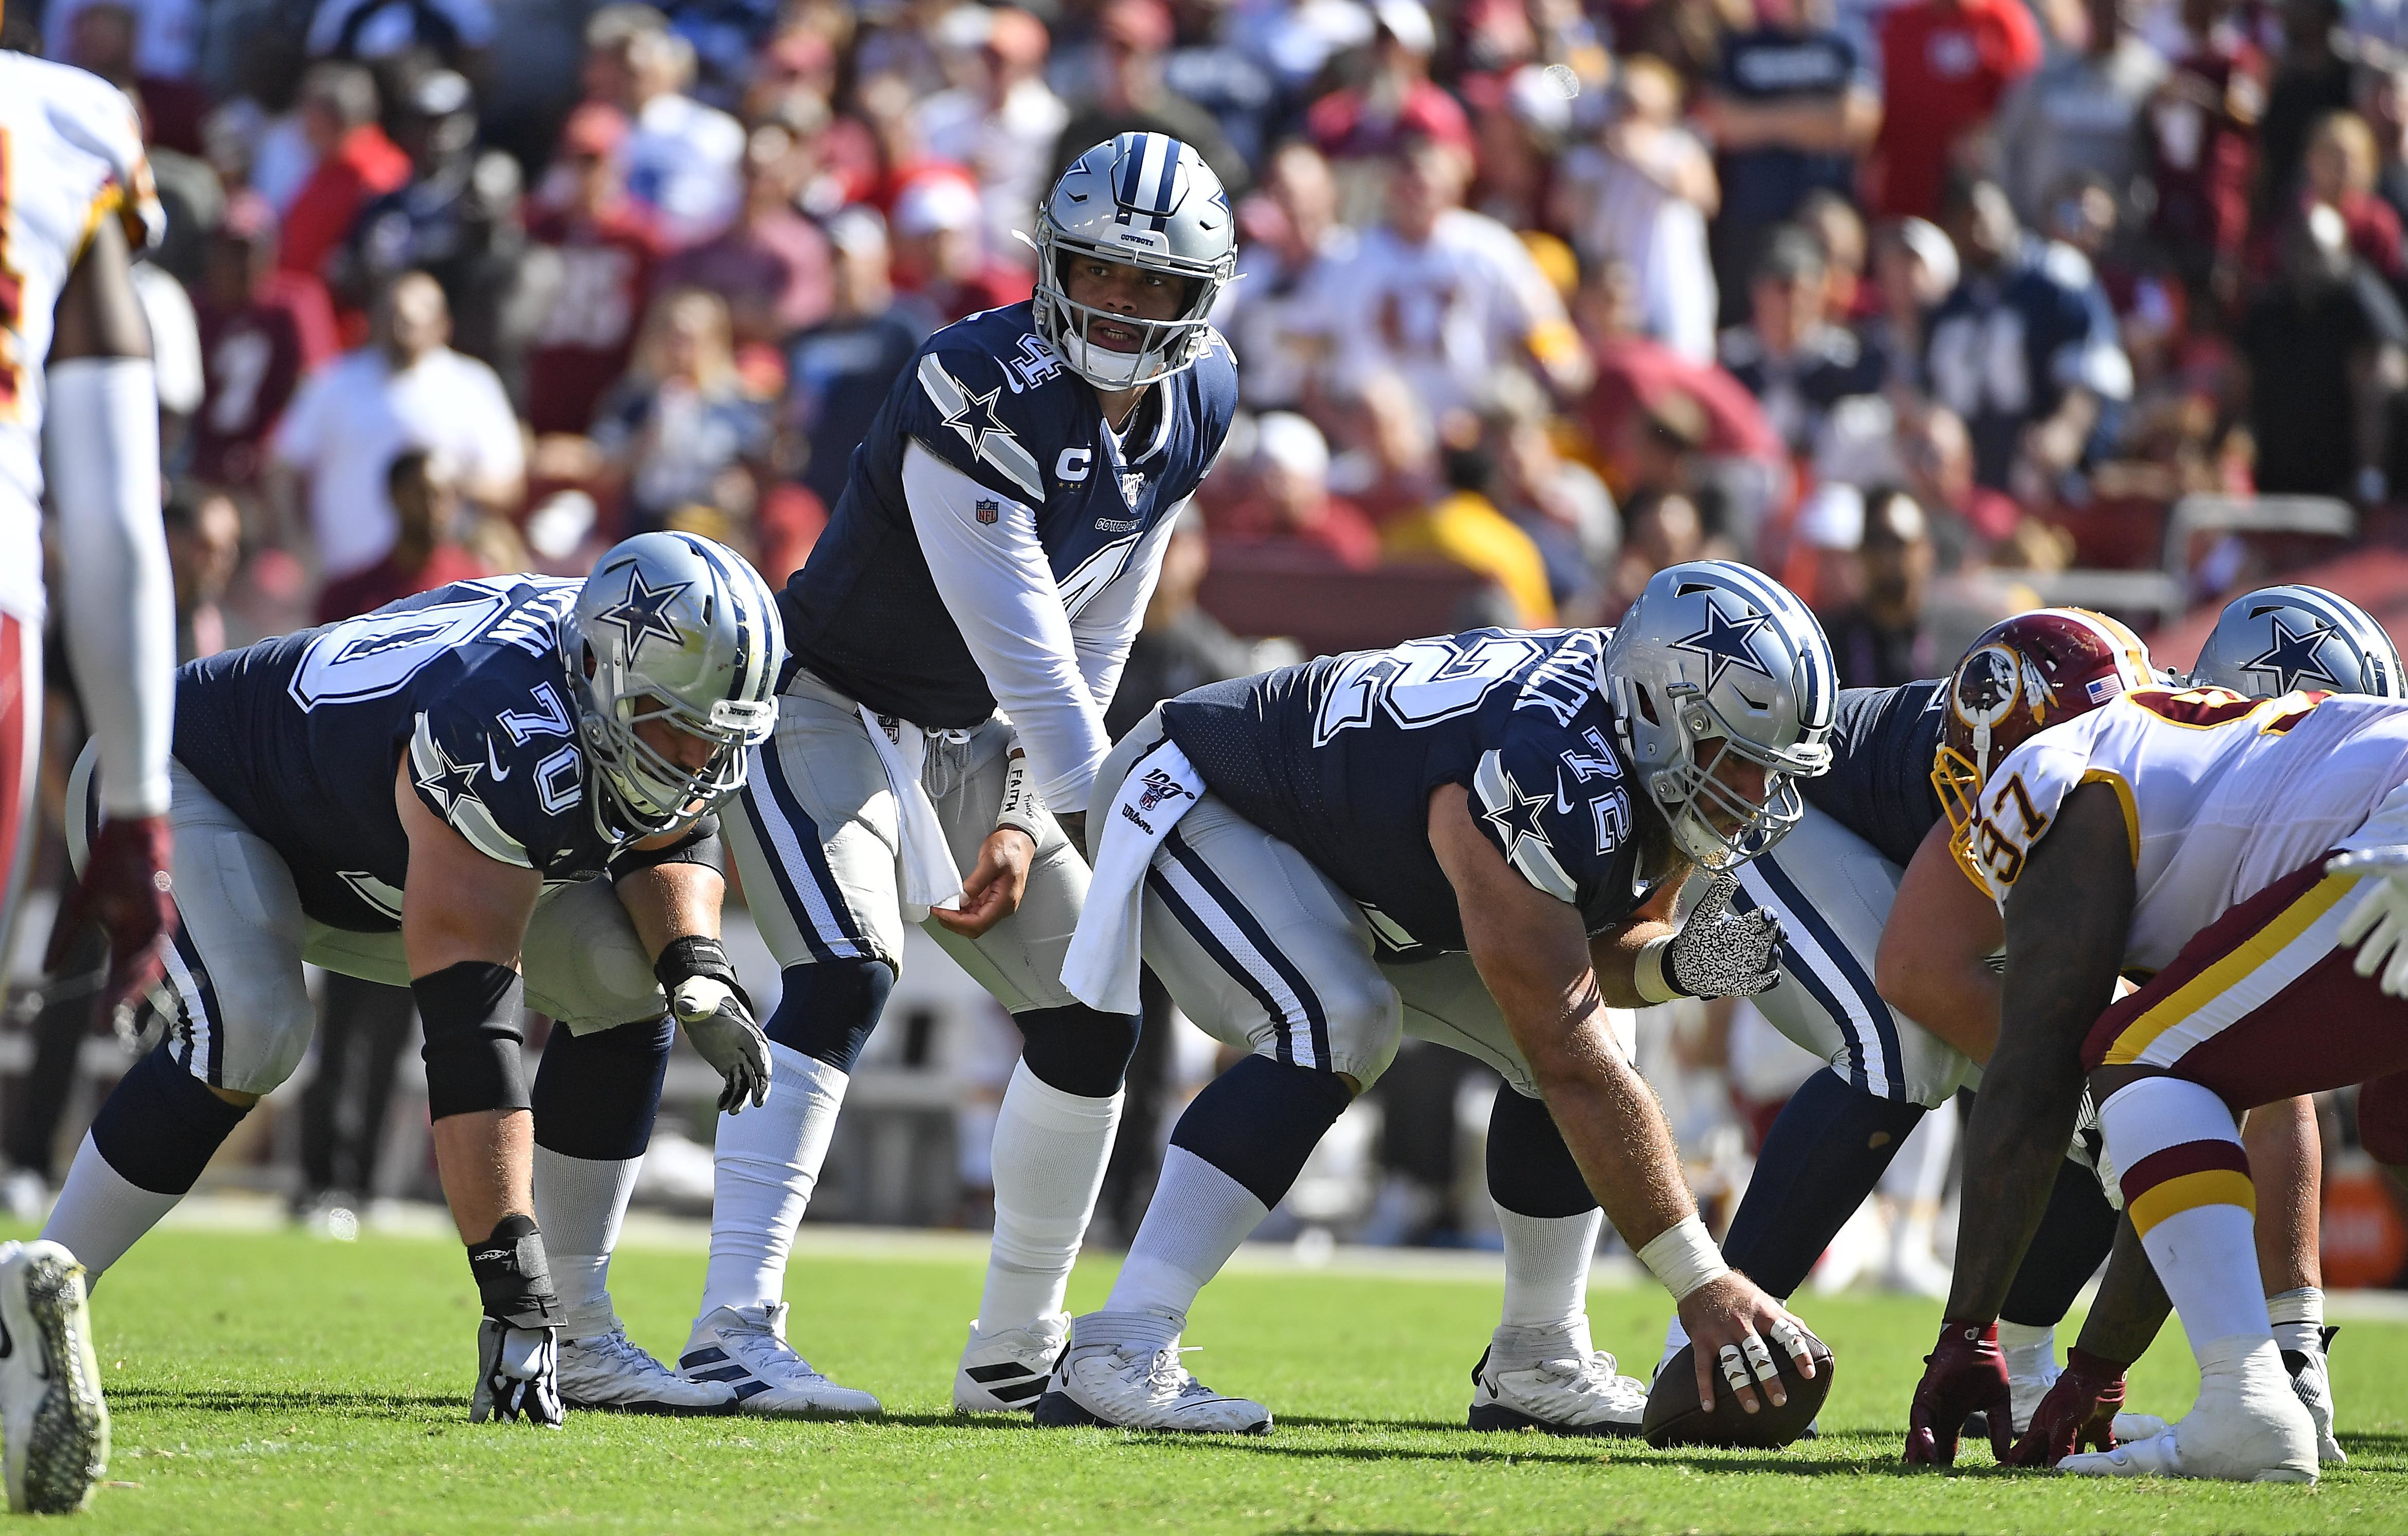 Brees Out for 6 Weeks, How Much Will Cowboys Win Streak Last?